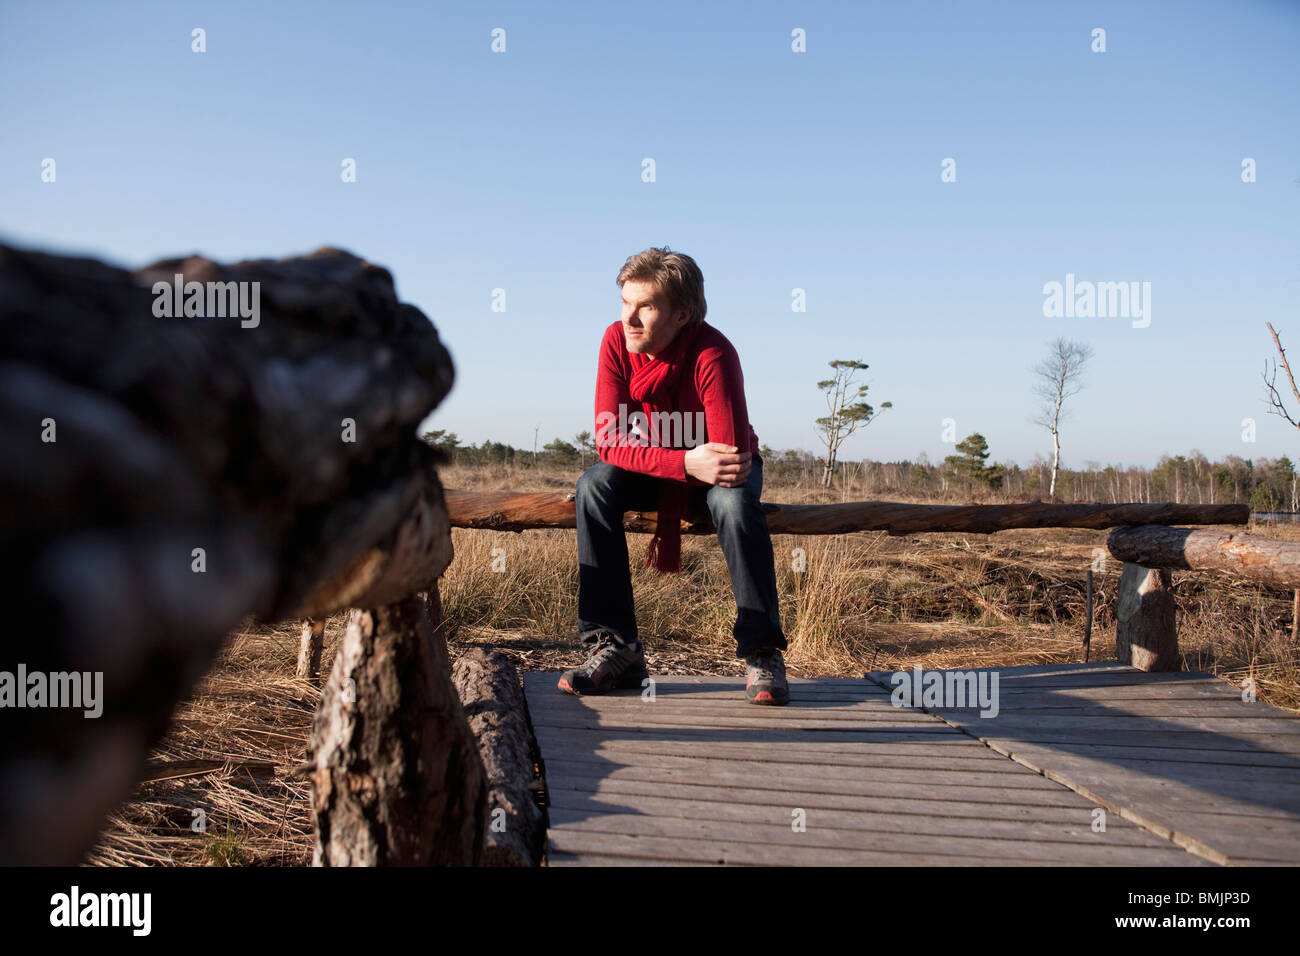 Man relaxing on wooden bench Stock Photo